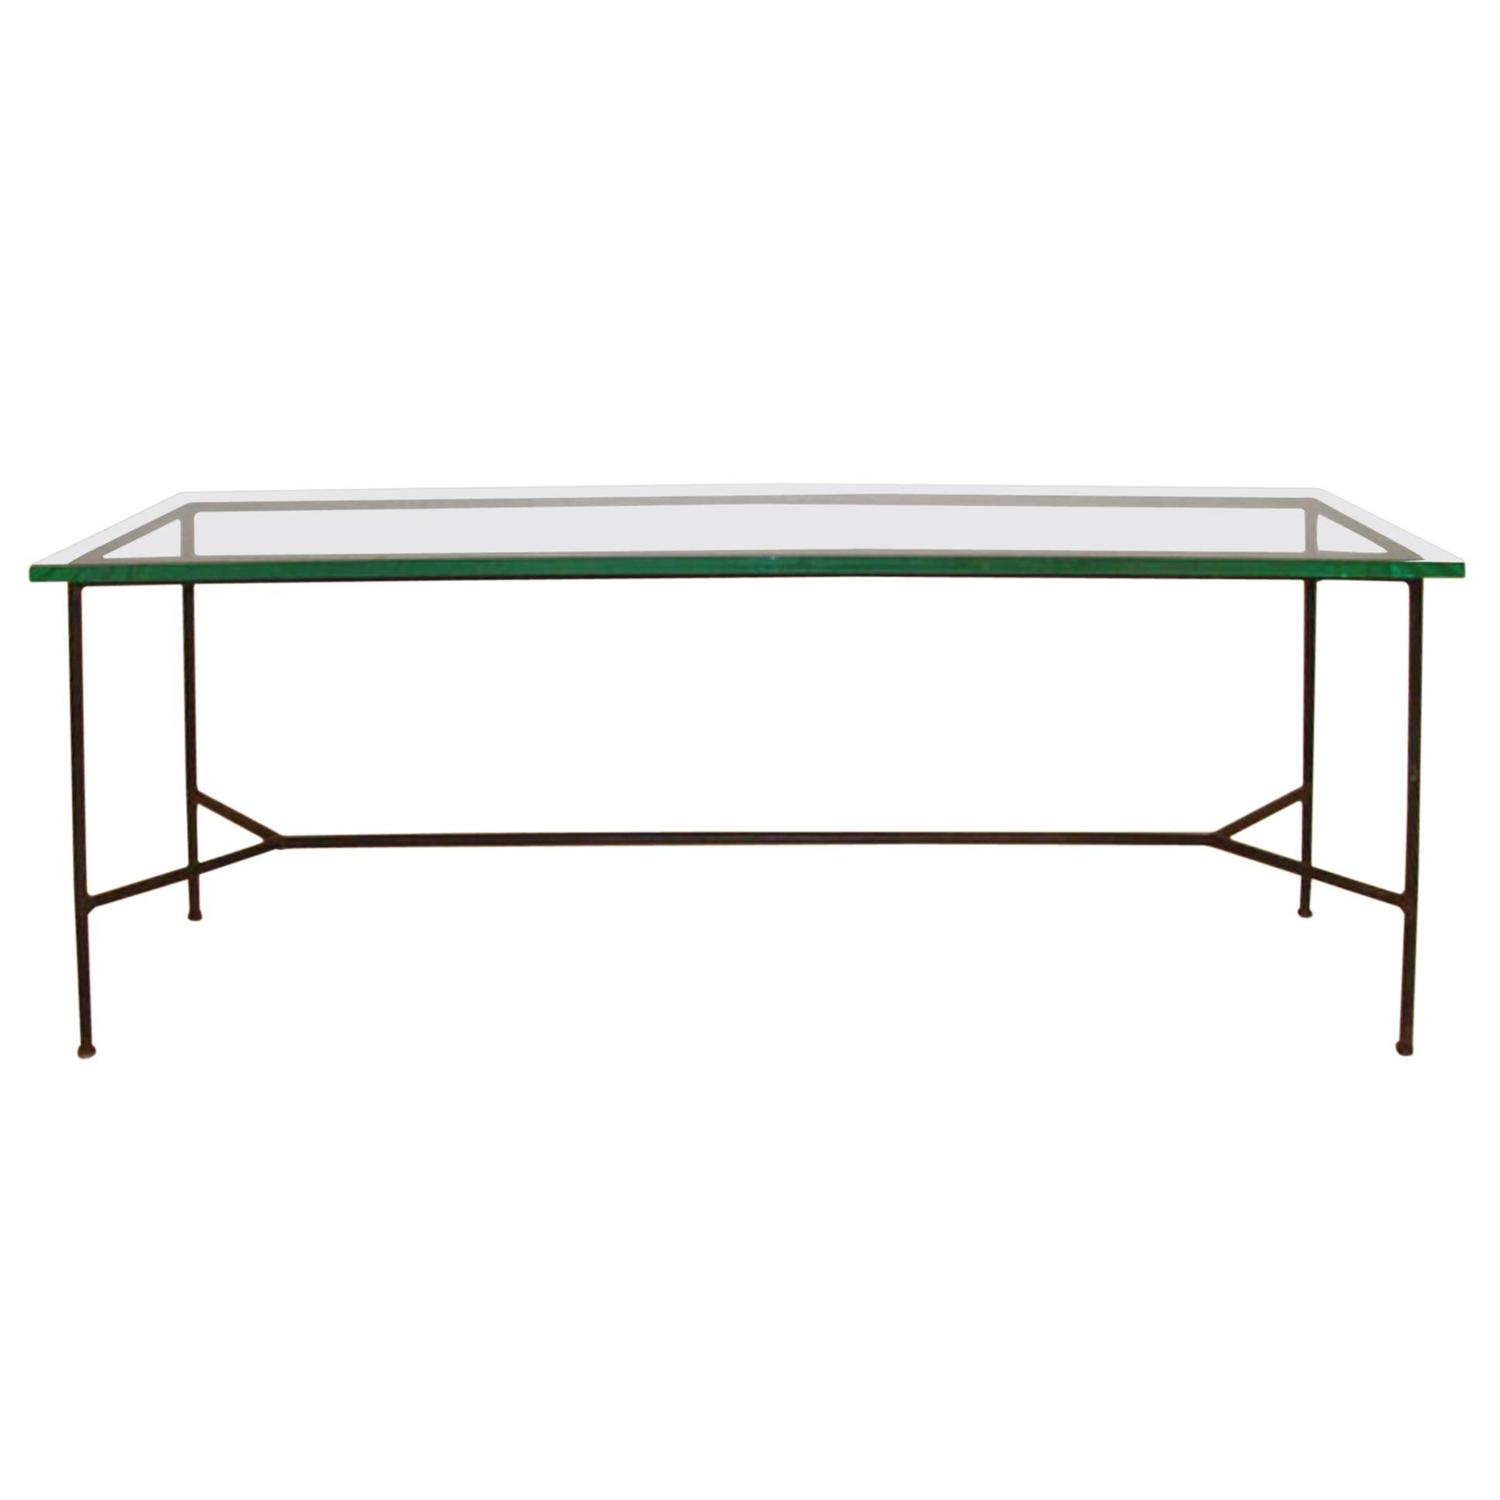 Midcentury low console or sofa table for sale at 1stdibs for Low sofa table